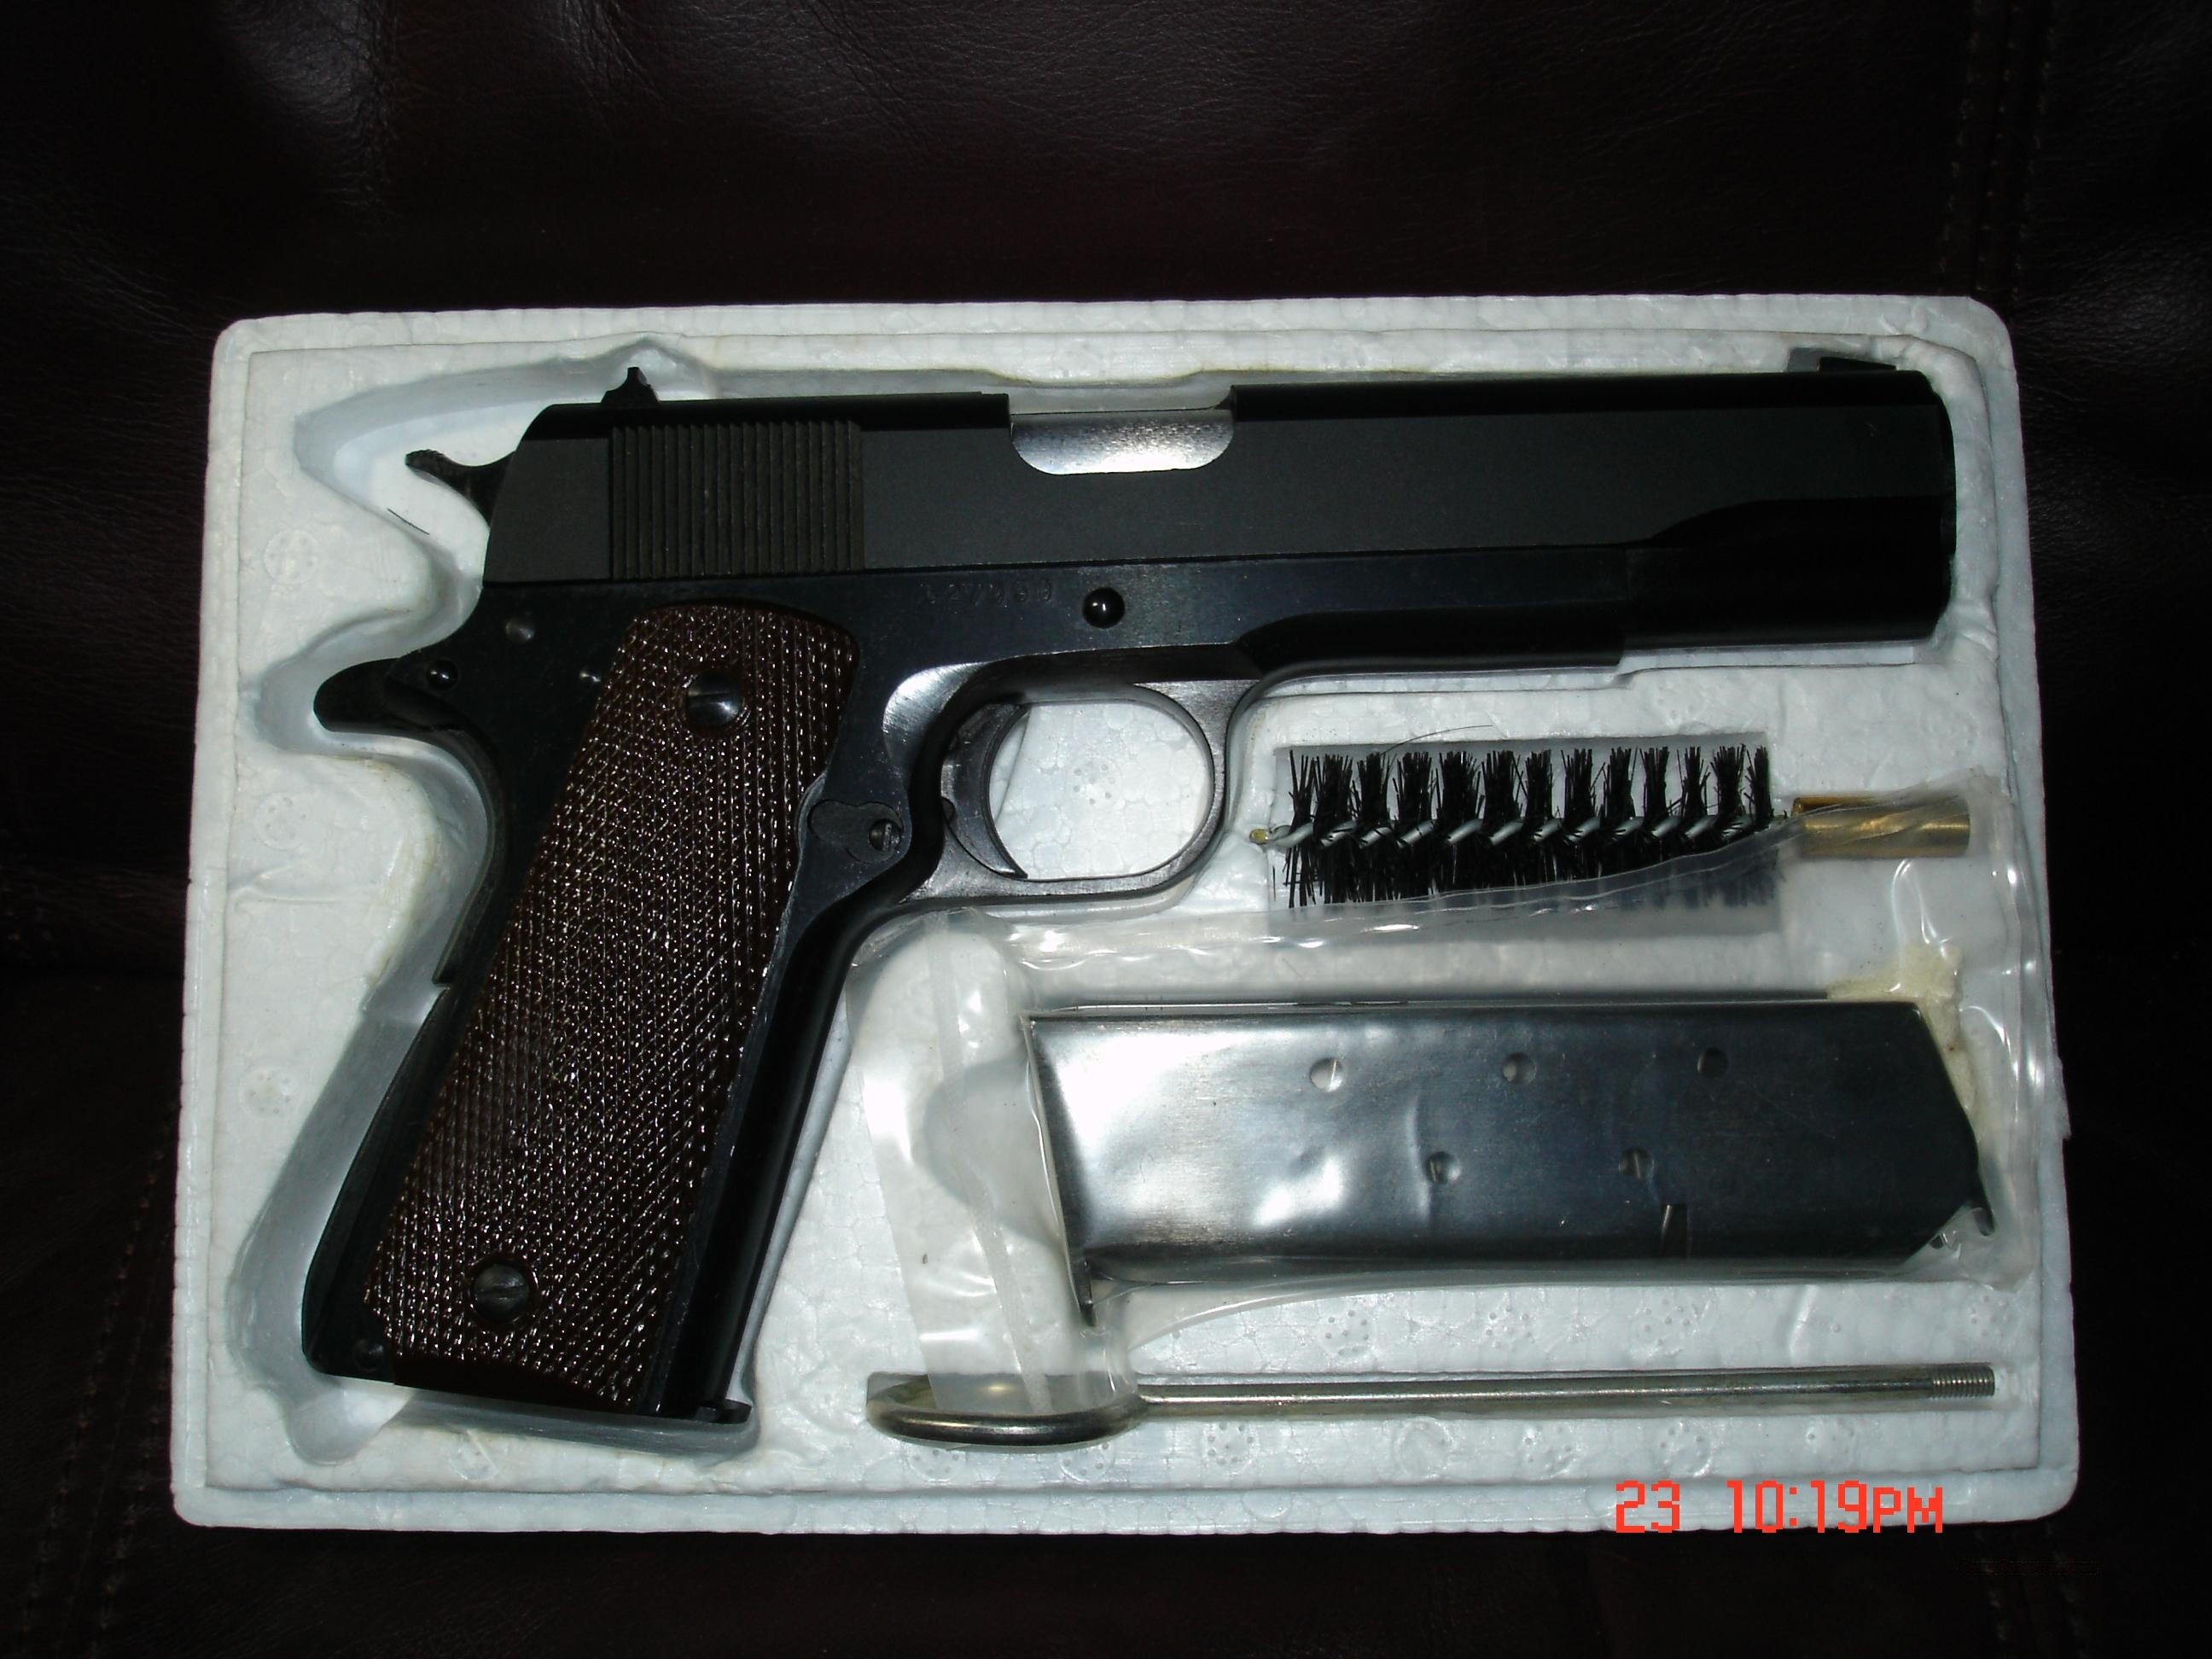 Norinco 1911A1 .45ACP PRE-BAN Pistol - NEW - Made in 1990s - No Longer Imported  Guns > Pistols > Norinco Pistols